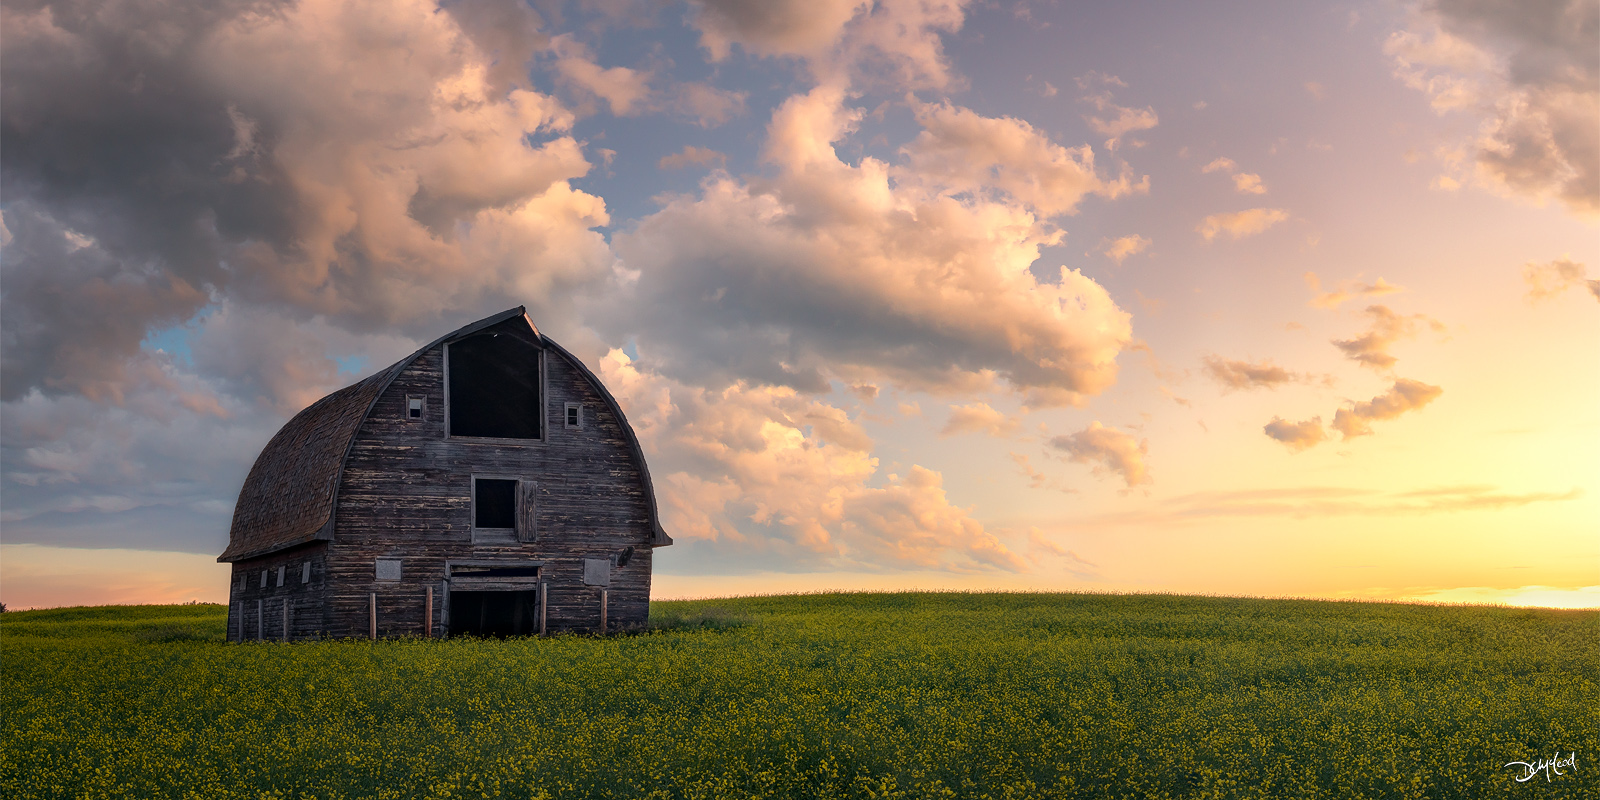 Old barn in a prairie field during a colorful sunrise with puffy clouds near Turtleford, SK.